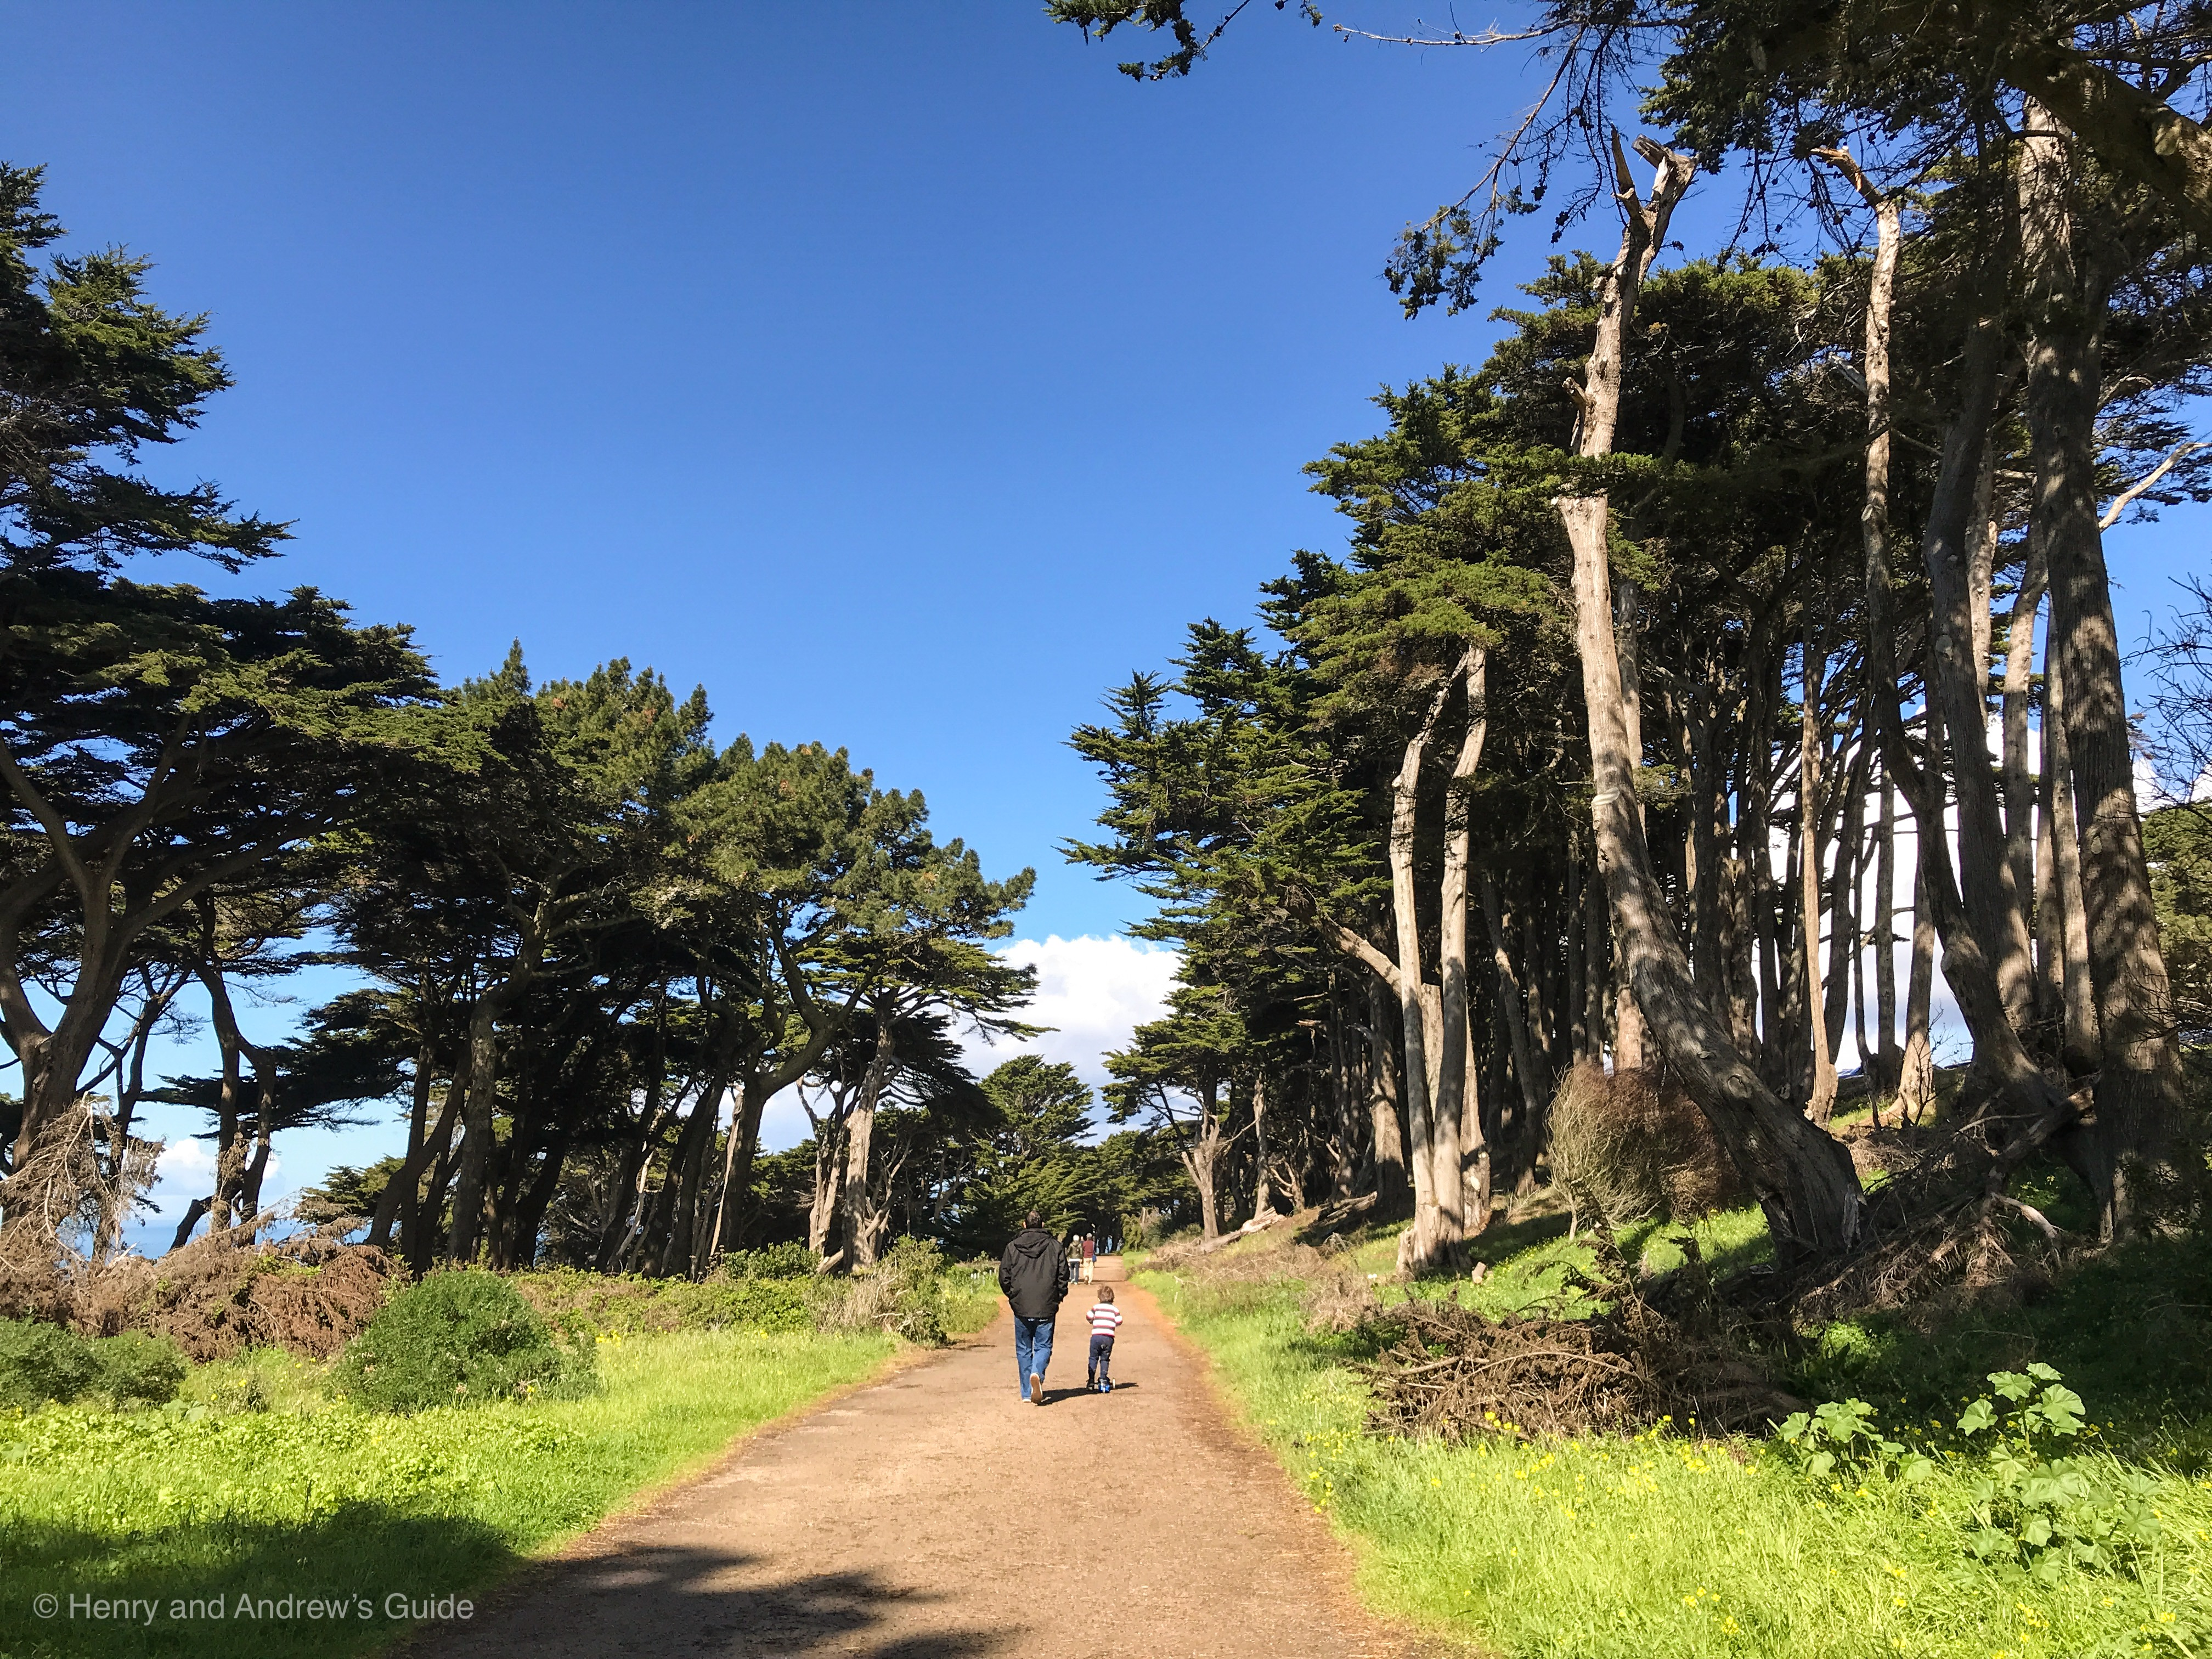 Lands End San Francisco with Kids | San Francisco with Kids | Kid Friendly Hikes in San Francisco | Henry and Andrew's Guide (www.henryandandrewsguide.com)